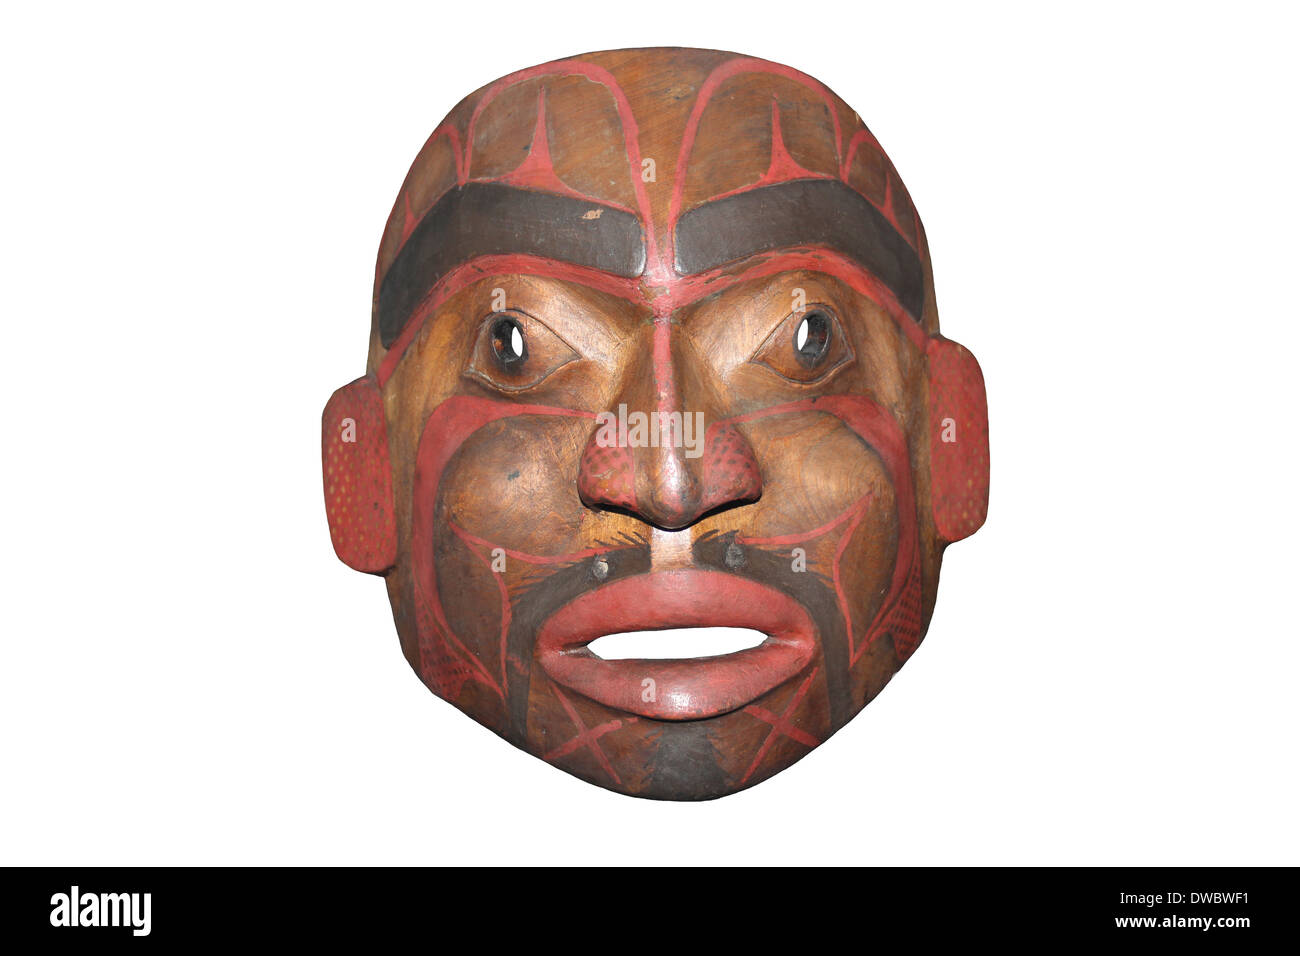 Haida Mask, an indigenous people of the Pacific Northwest Coast of North America - Stock Image